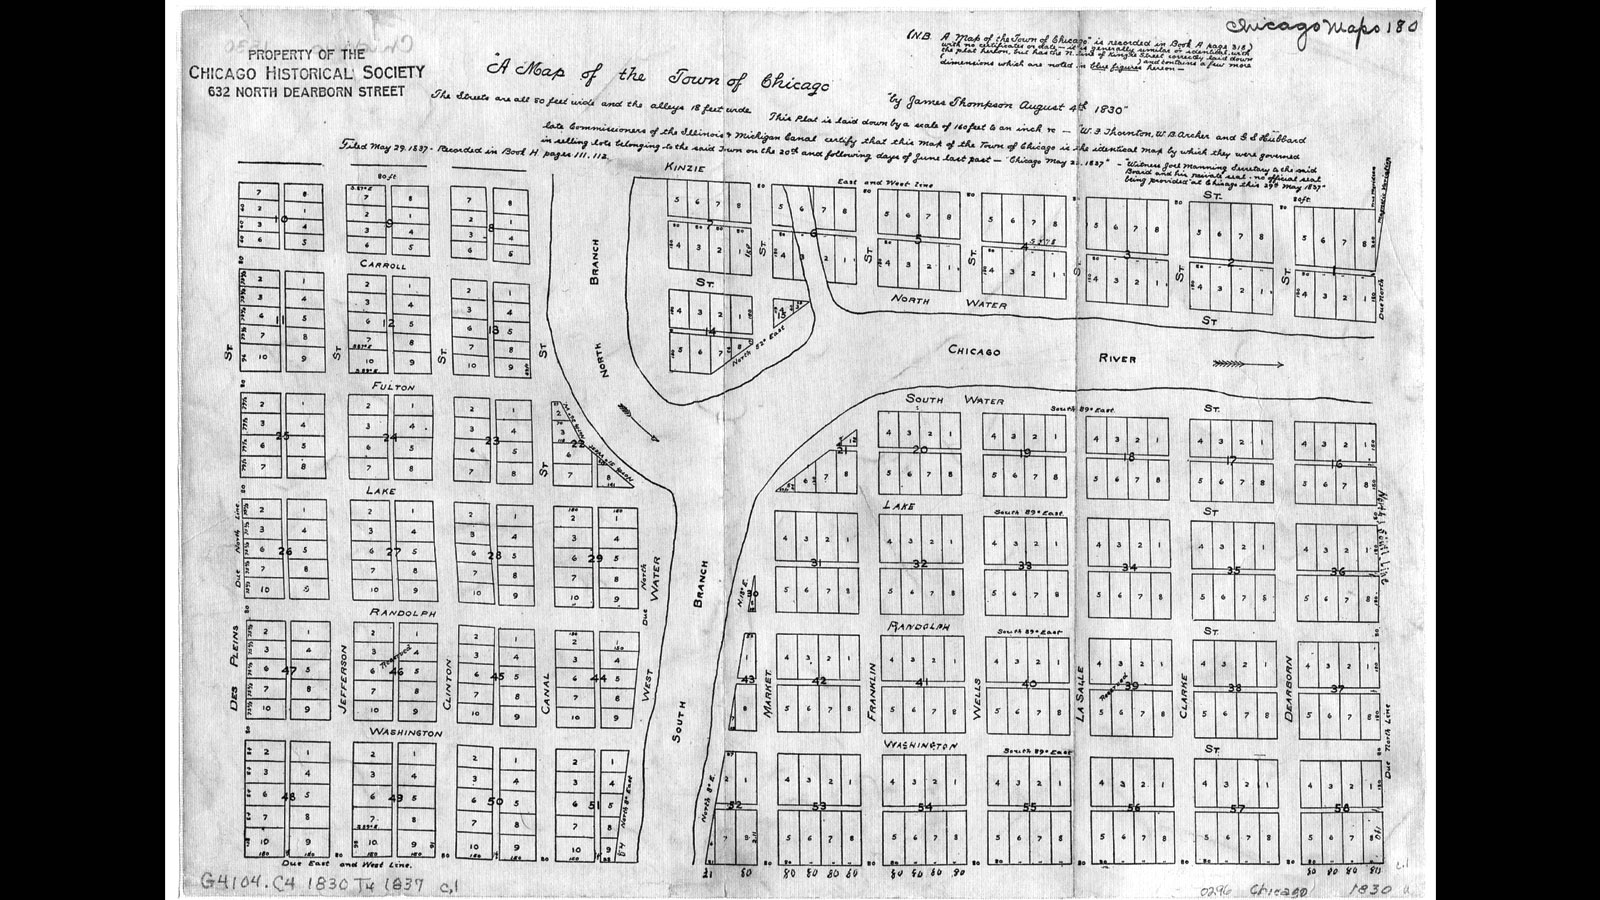 Then and Now The Story of Chicago in Maps WTTW Chicago Public